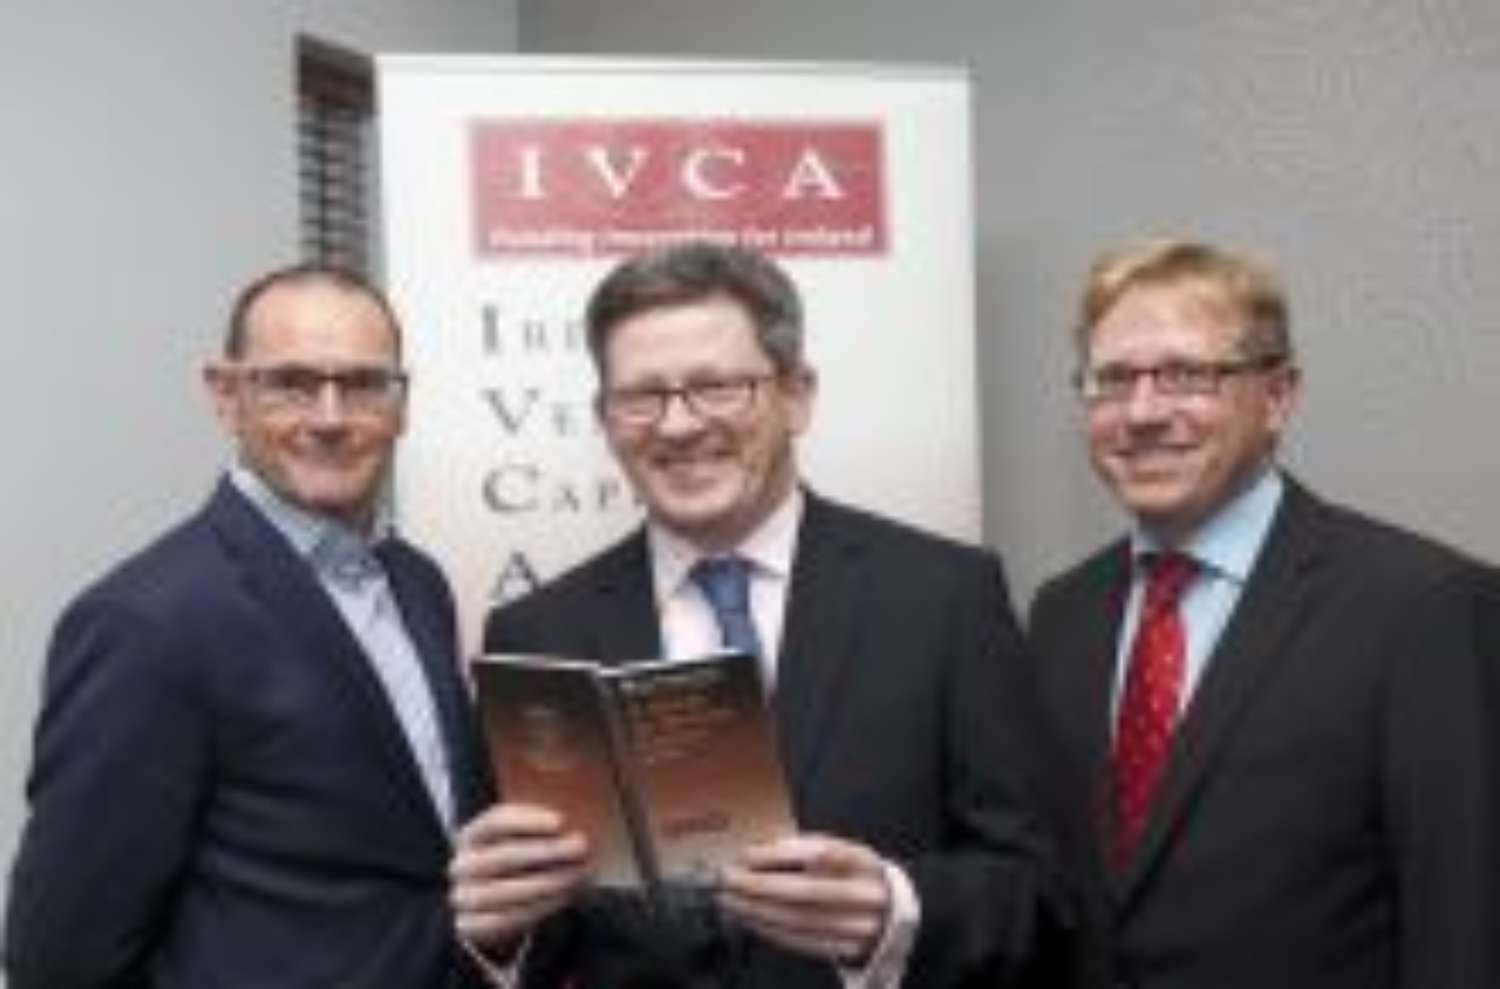 20000 jobs created by Irish venture capital backed firms over last 10 years